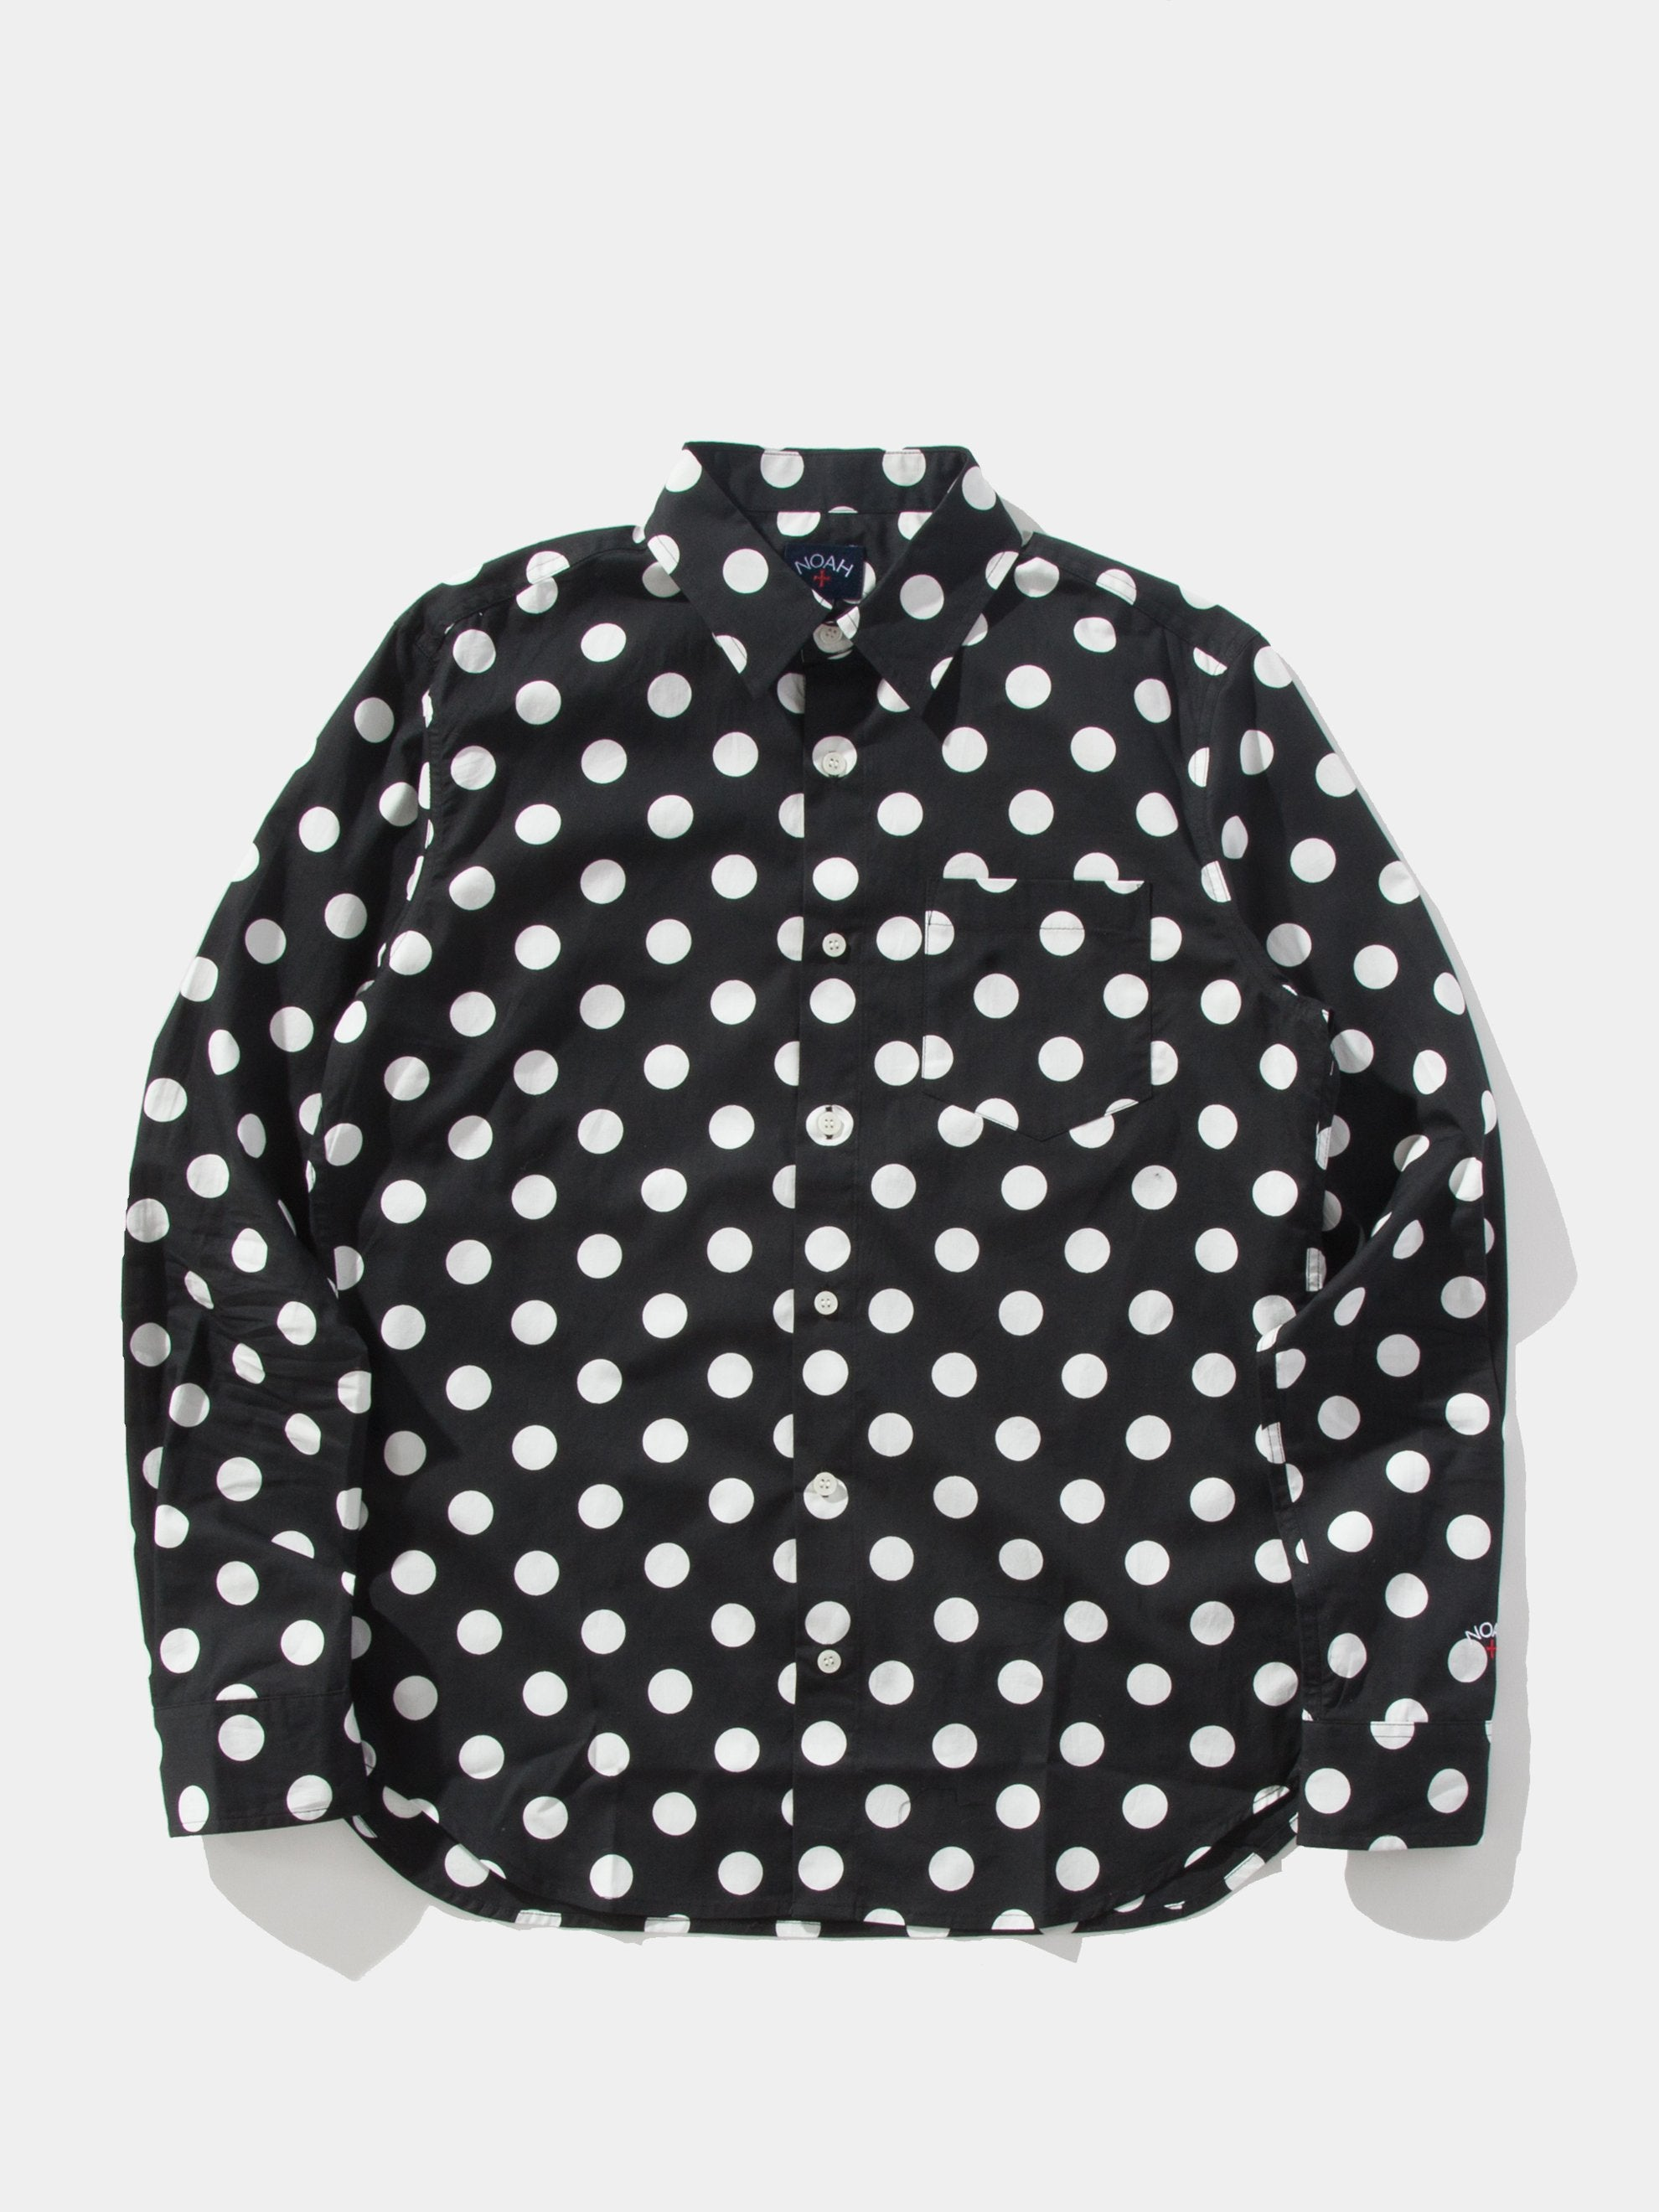 Black/White The Cure Polka Dot Shirt 1